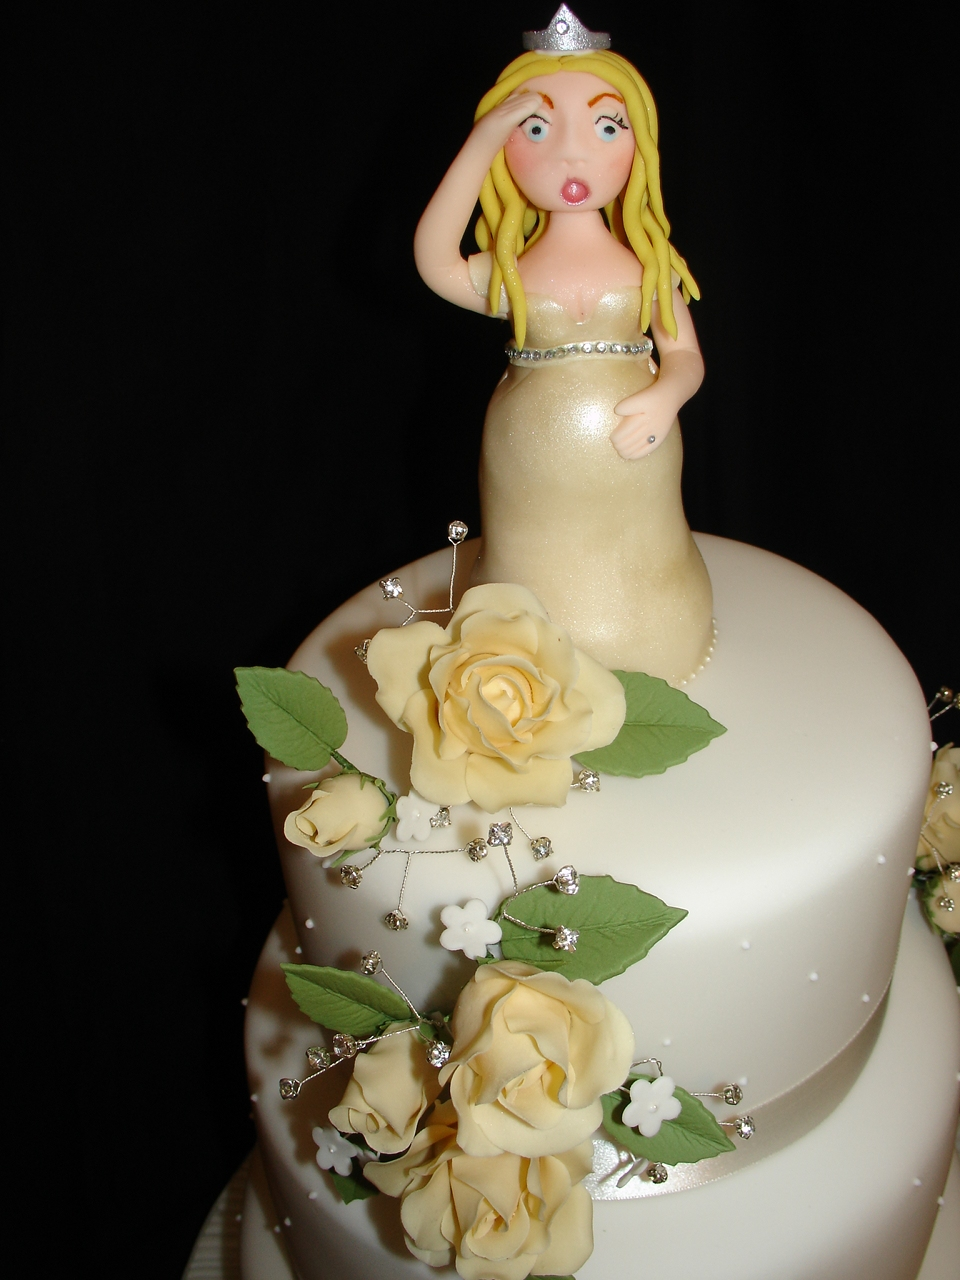 Pregnant Bride With Ivory Roses Wedding Cake - CakeCentral.com